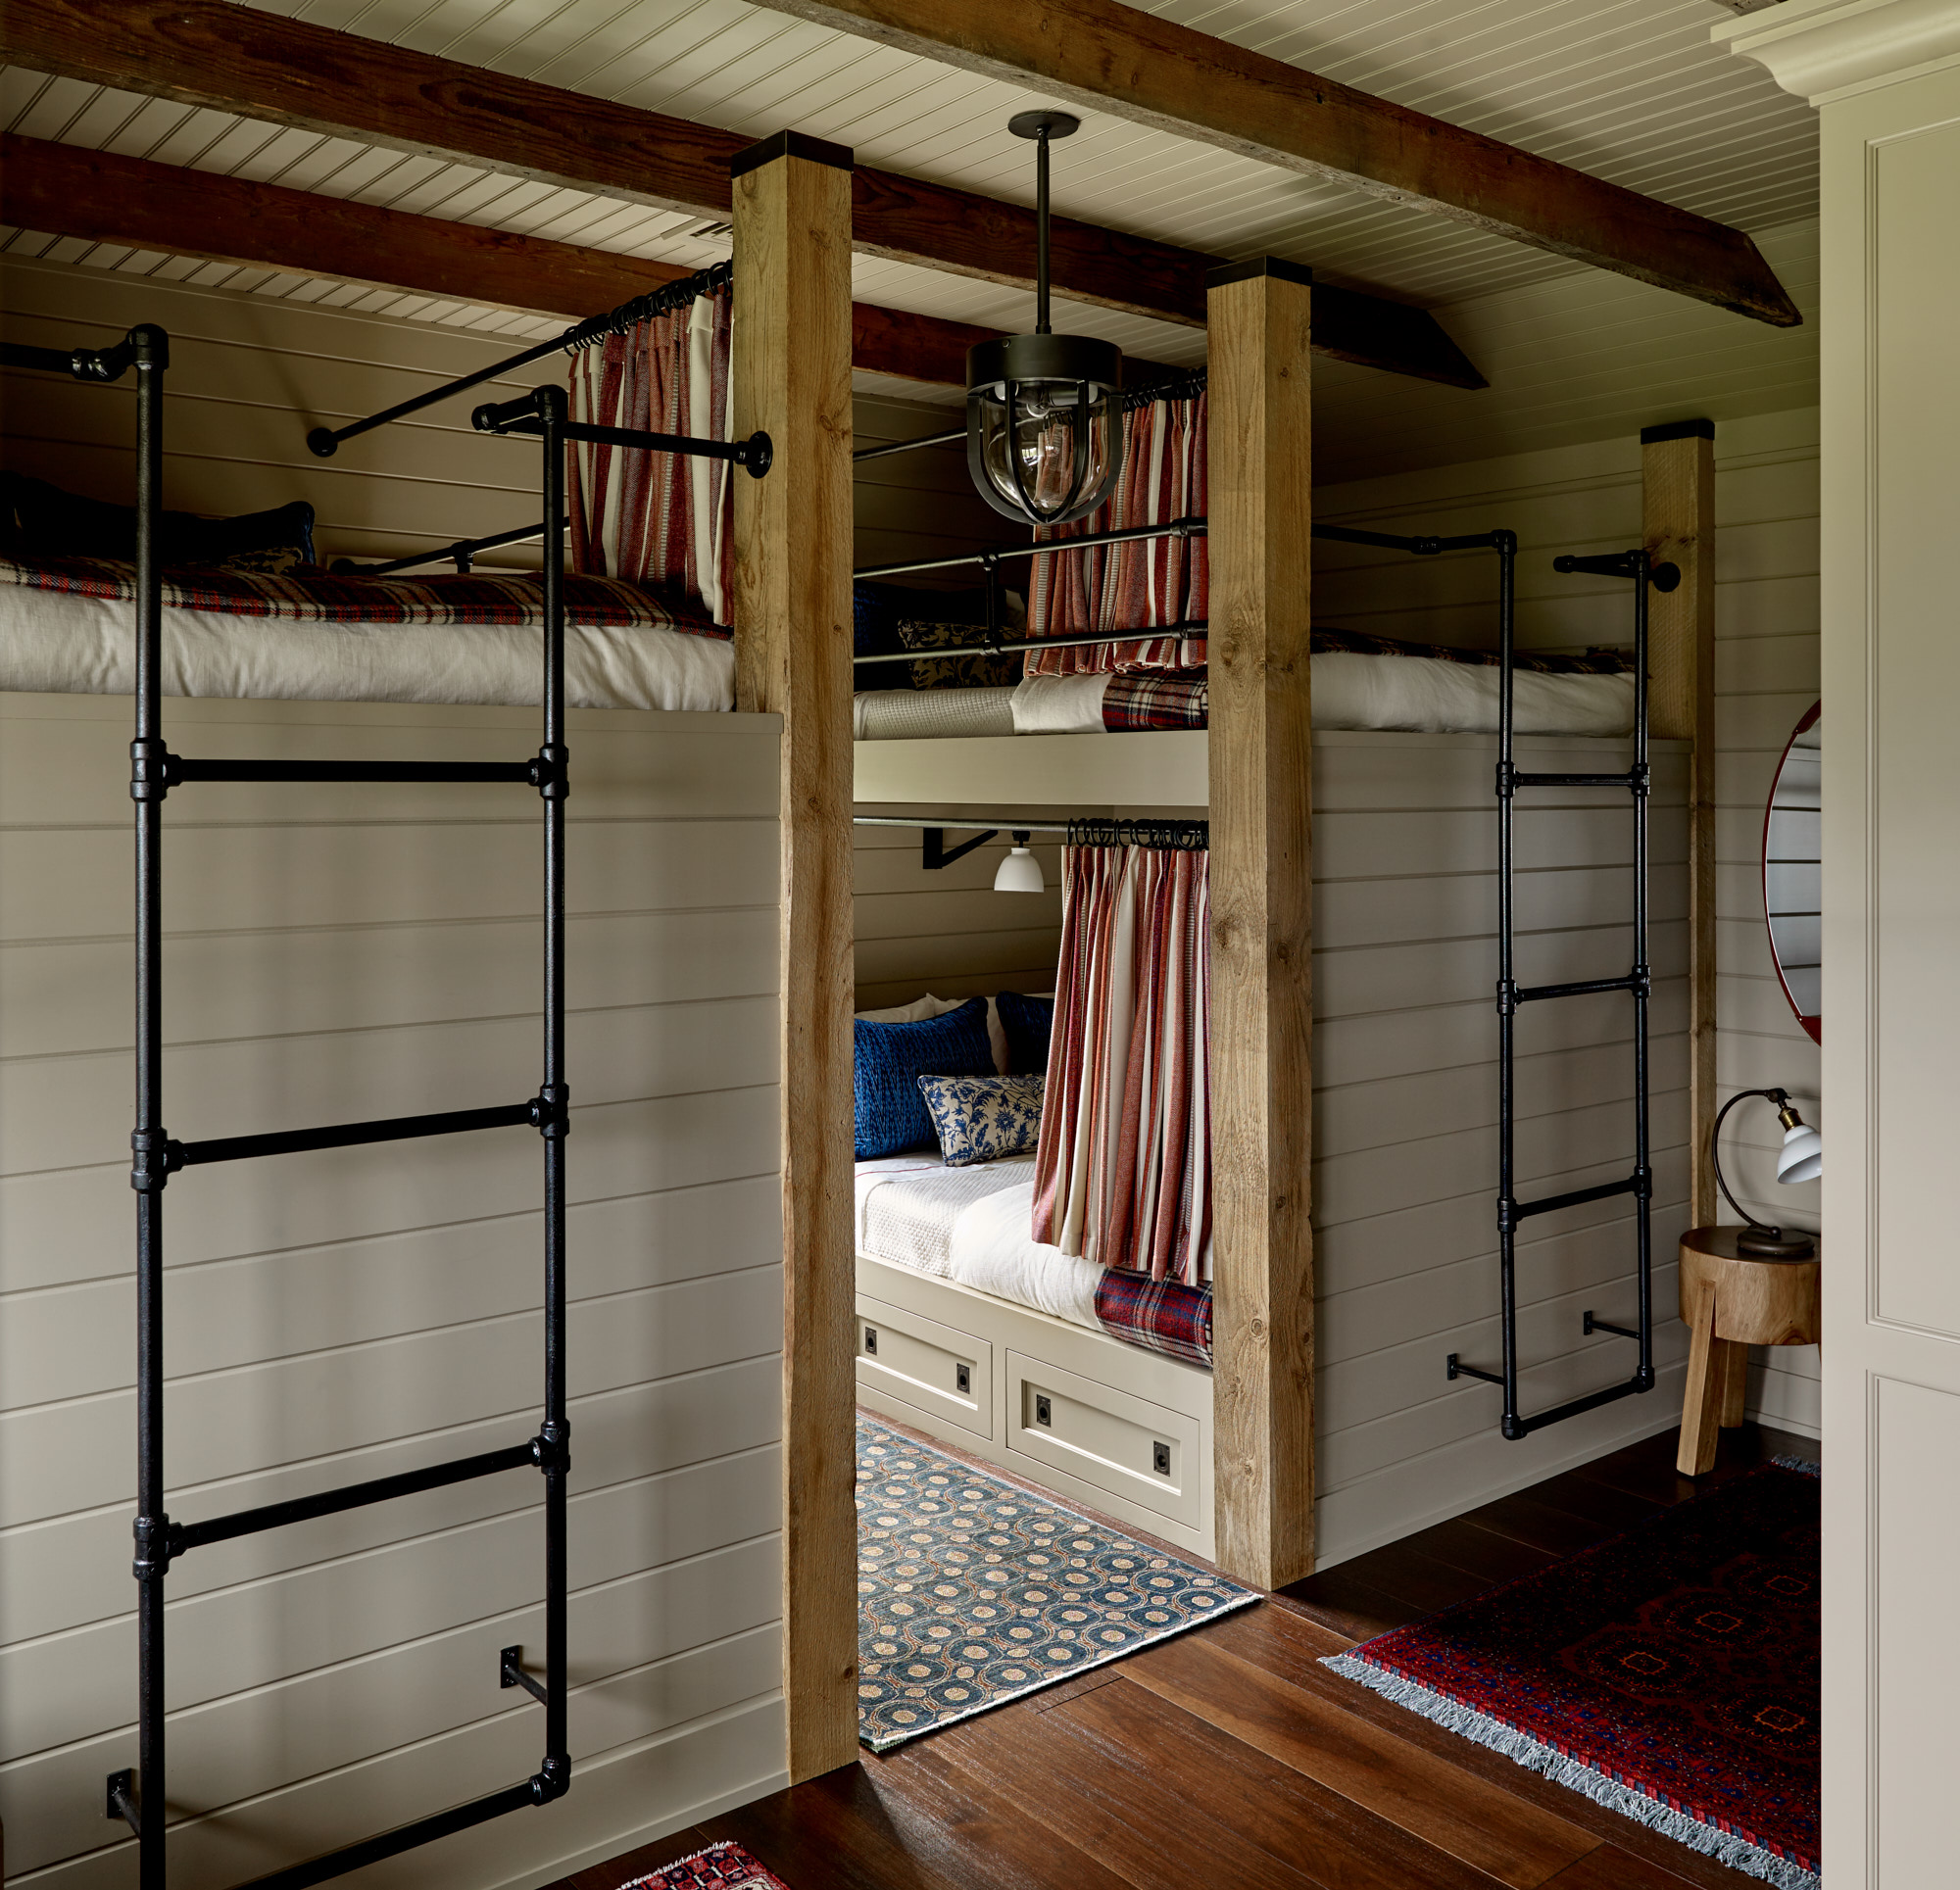 Bunkbeds with iron ladders at the foot of the beds.